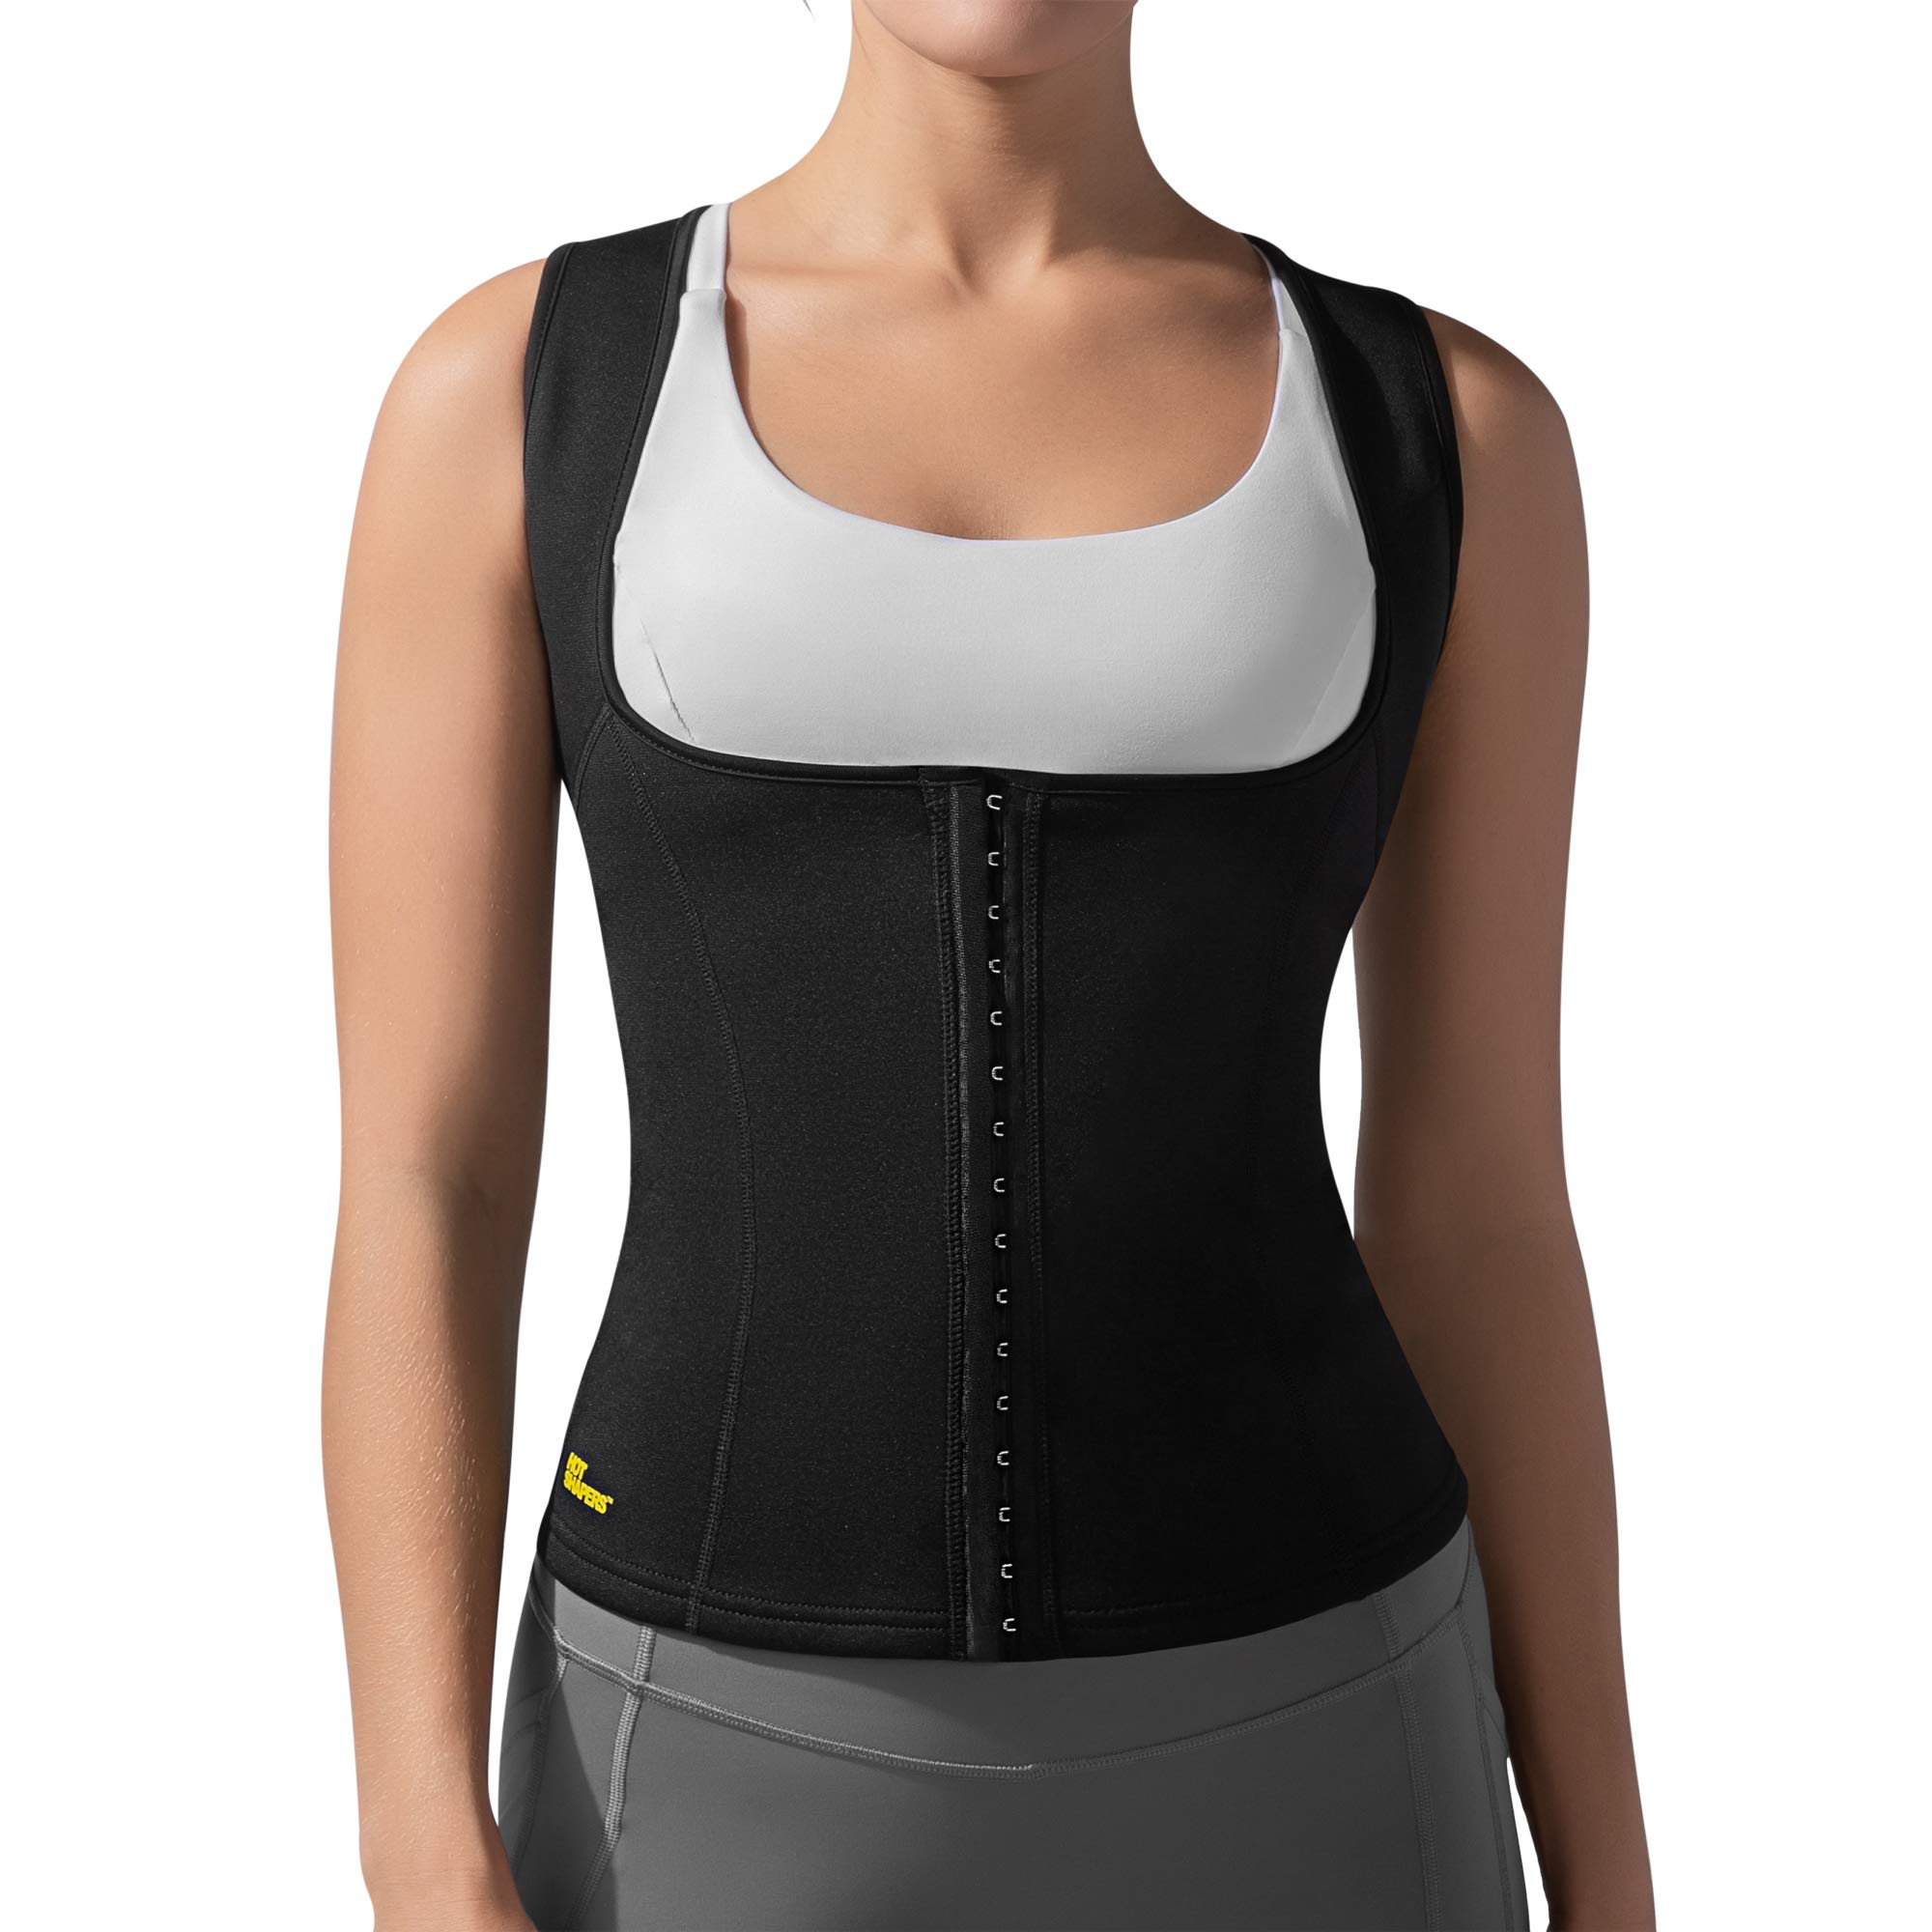 Hot Shapers Cami Hot Waist Cincher - Slimming Sweat and Workout Vest for Weight Loss - A Thermogenic Sauna Body Suit and Compression Girdle for Women Achieving a Slim Figure (Small, Black)